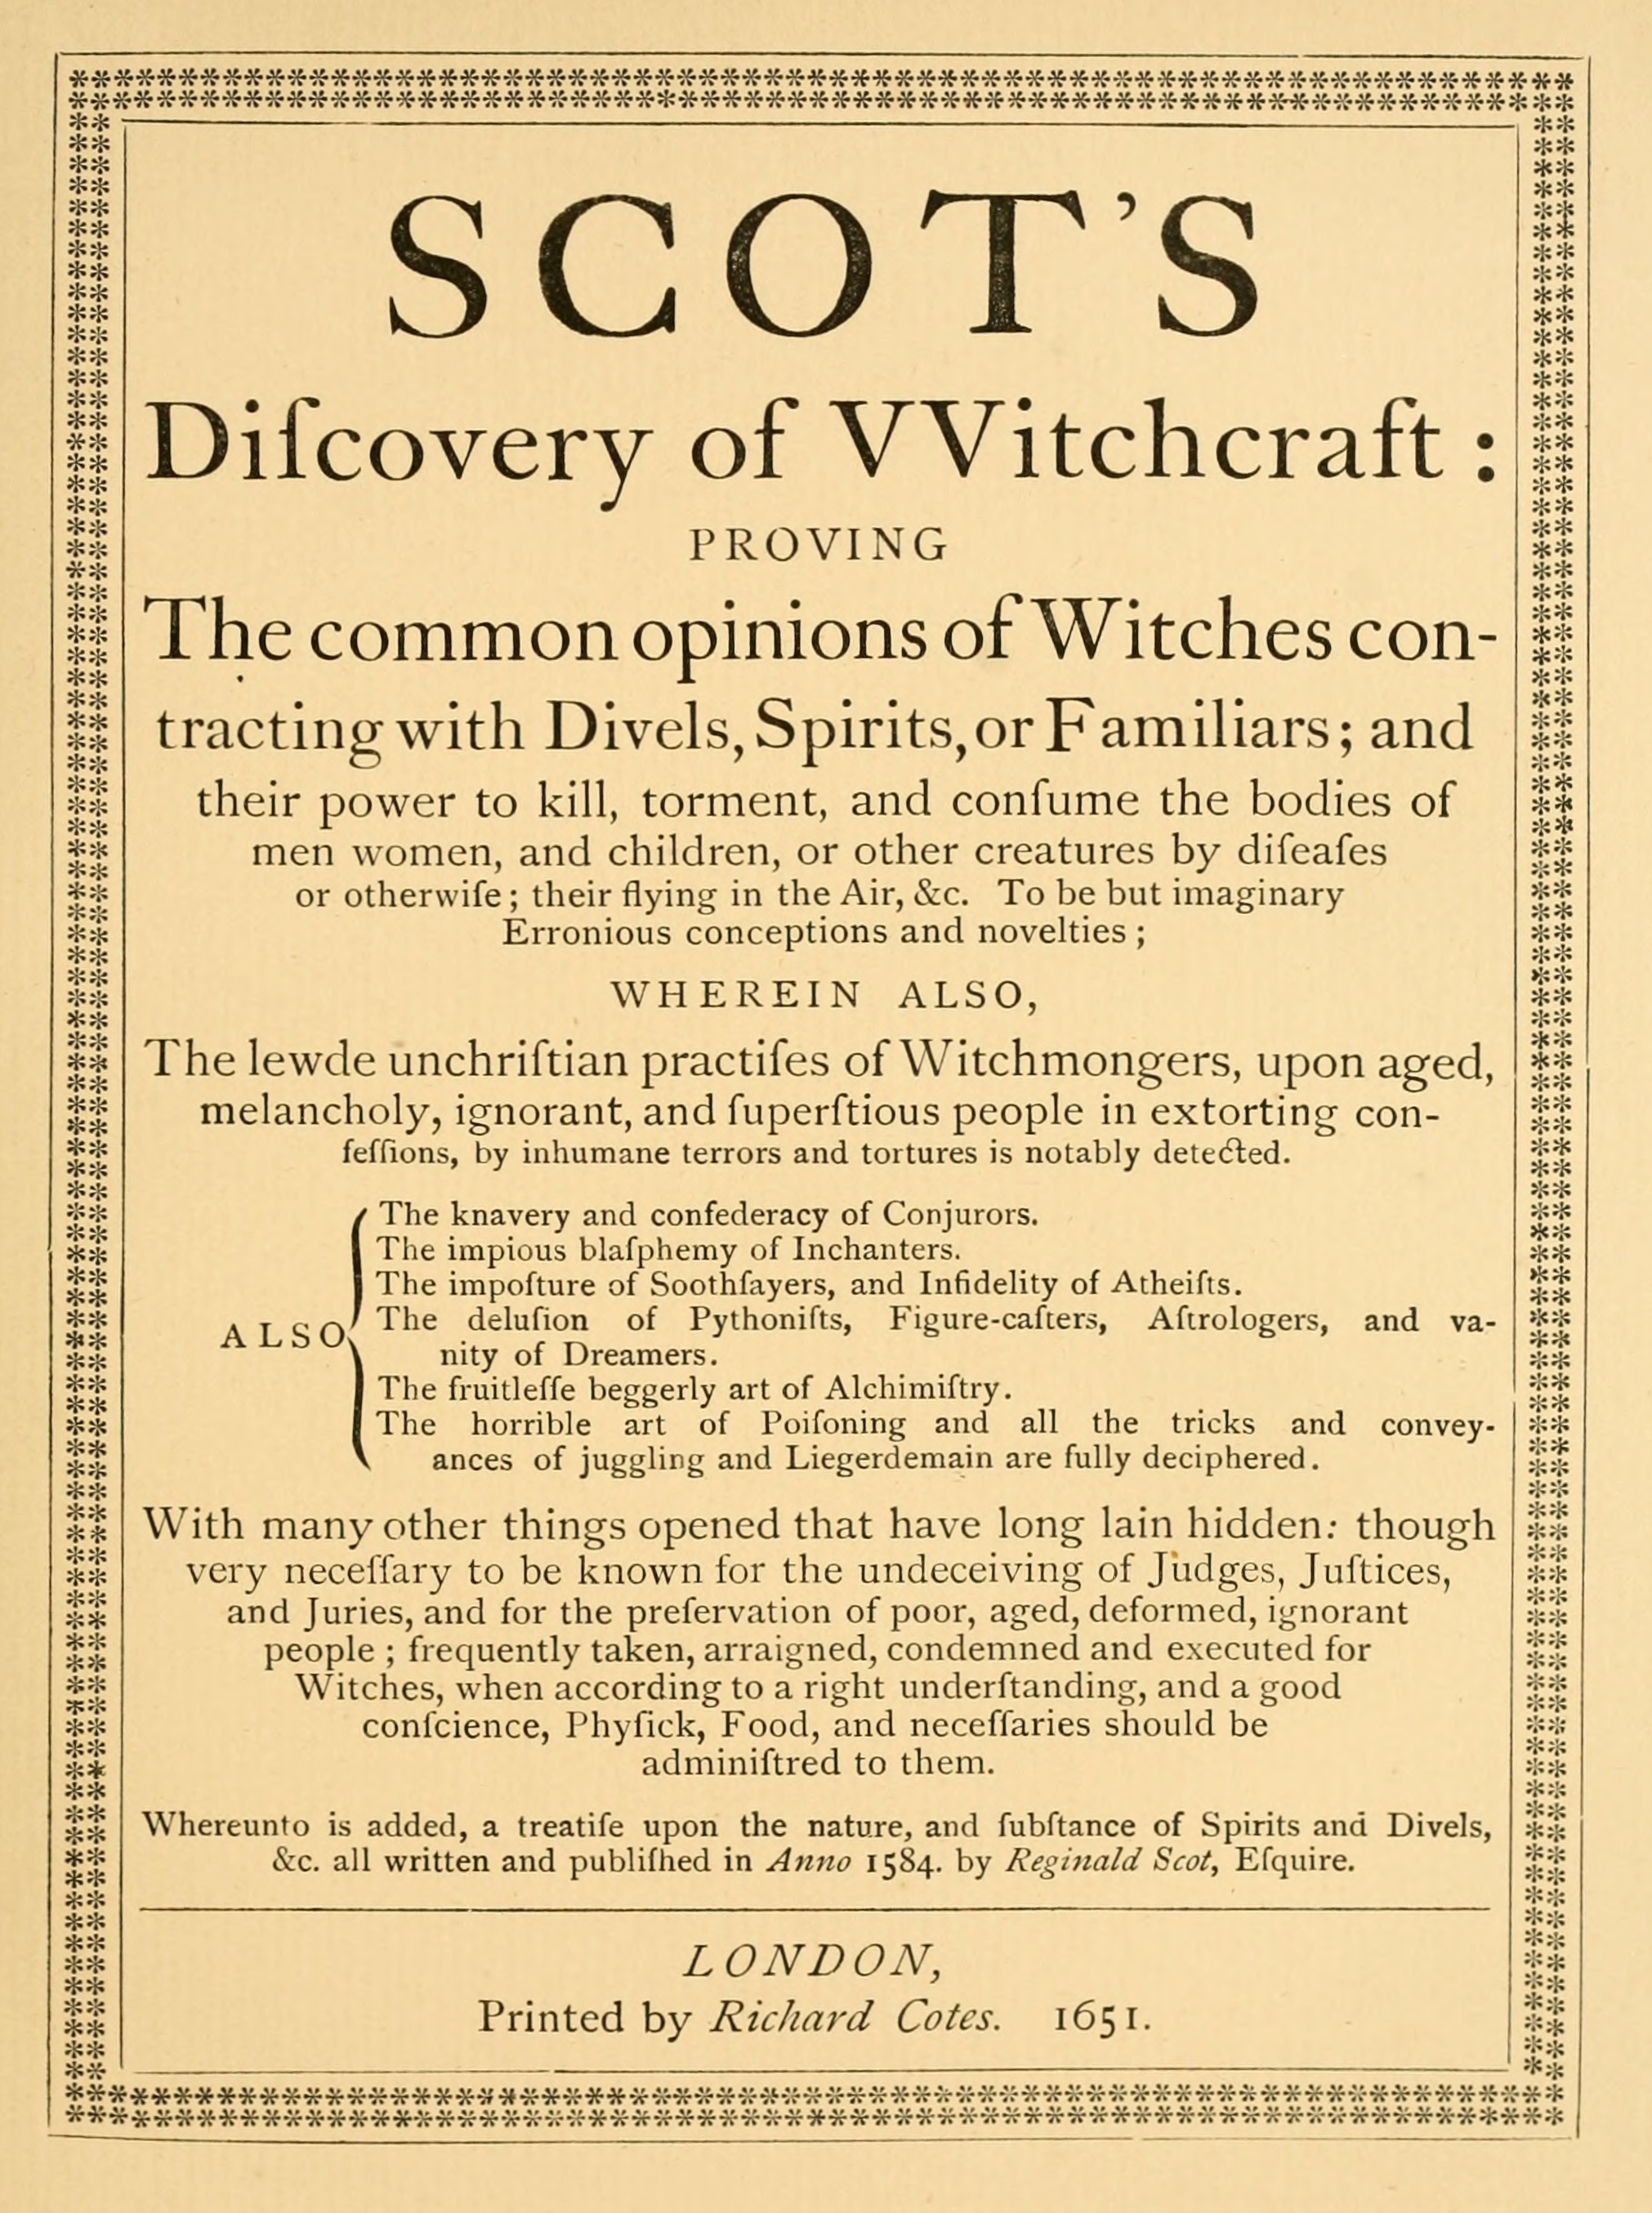 The Discoverie of Witchcraft - Wikipedia